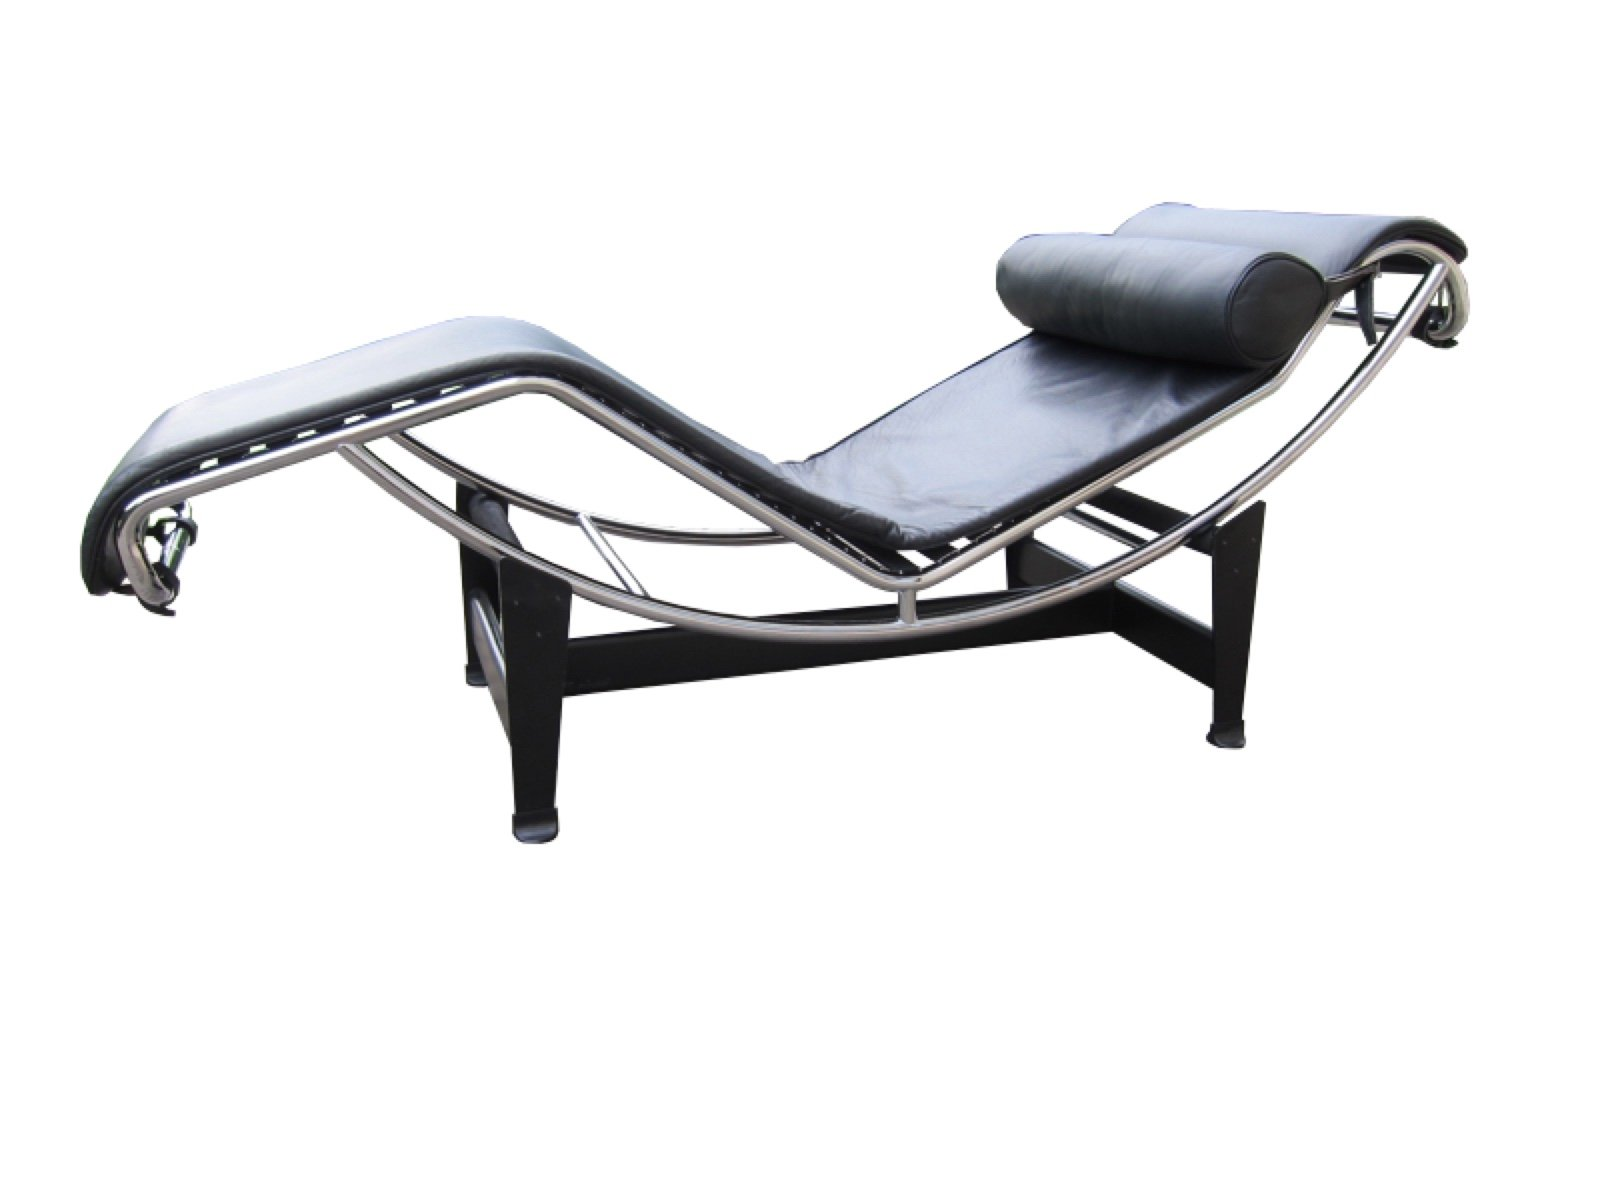 vintage lc4 chaise longue by le corbusier pierre jeanneret charlotte perriand for cassina. Black Bedroom Furniture Sets. Home Design Ideas